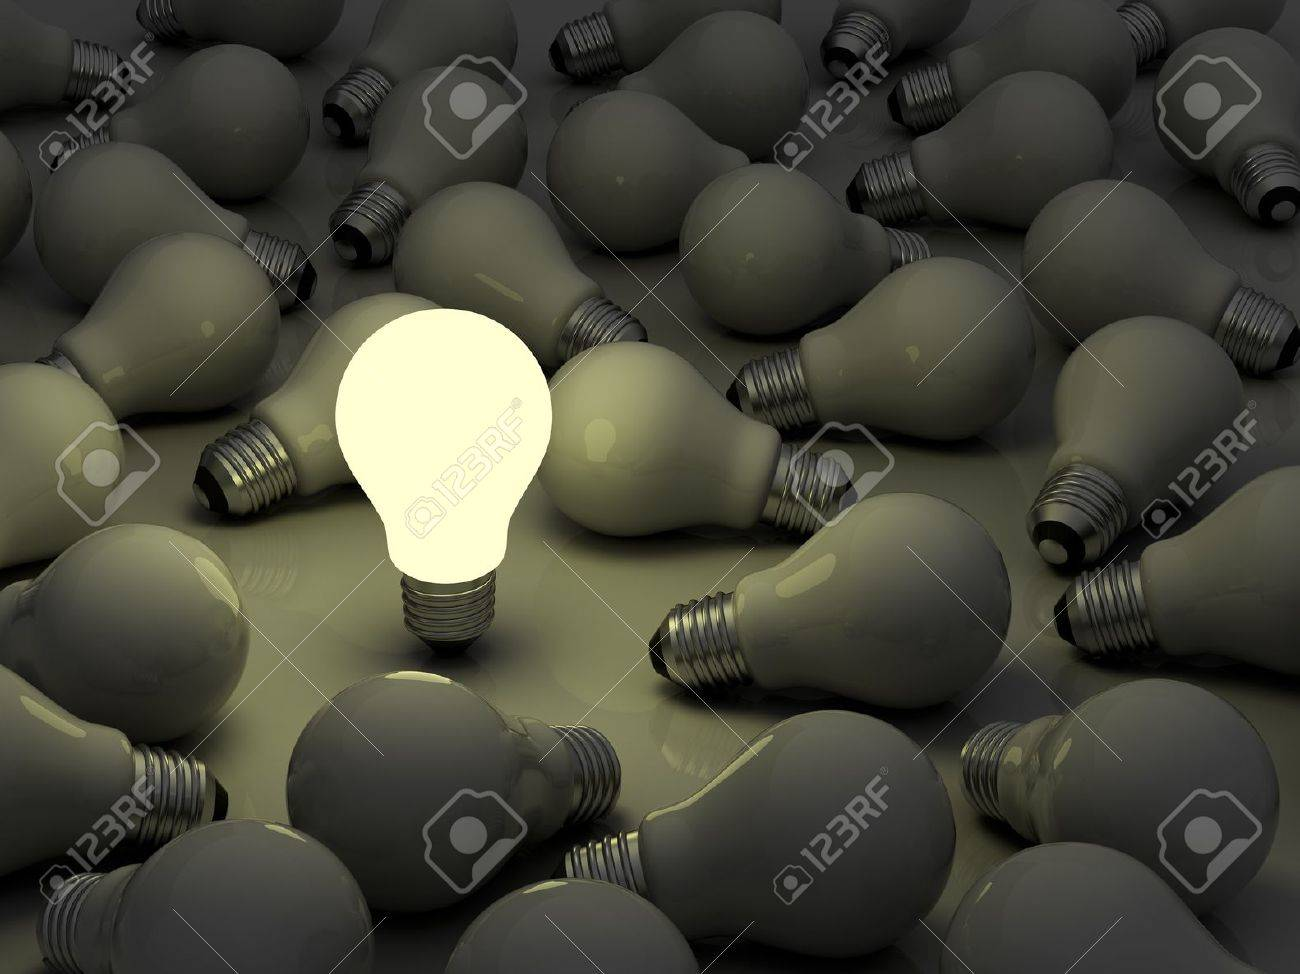 One glowing light bulb standing out from the unlit incandescent bulbs - 14821616